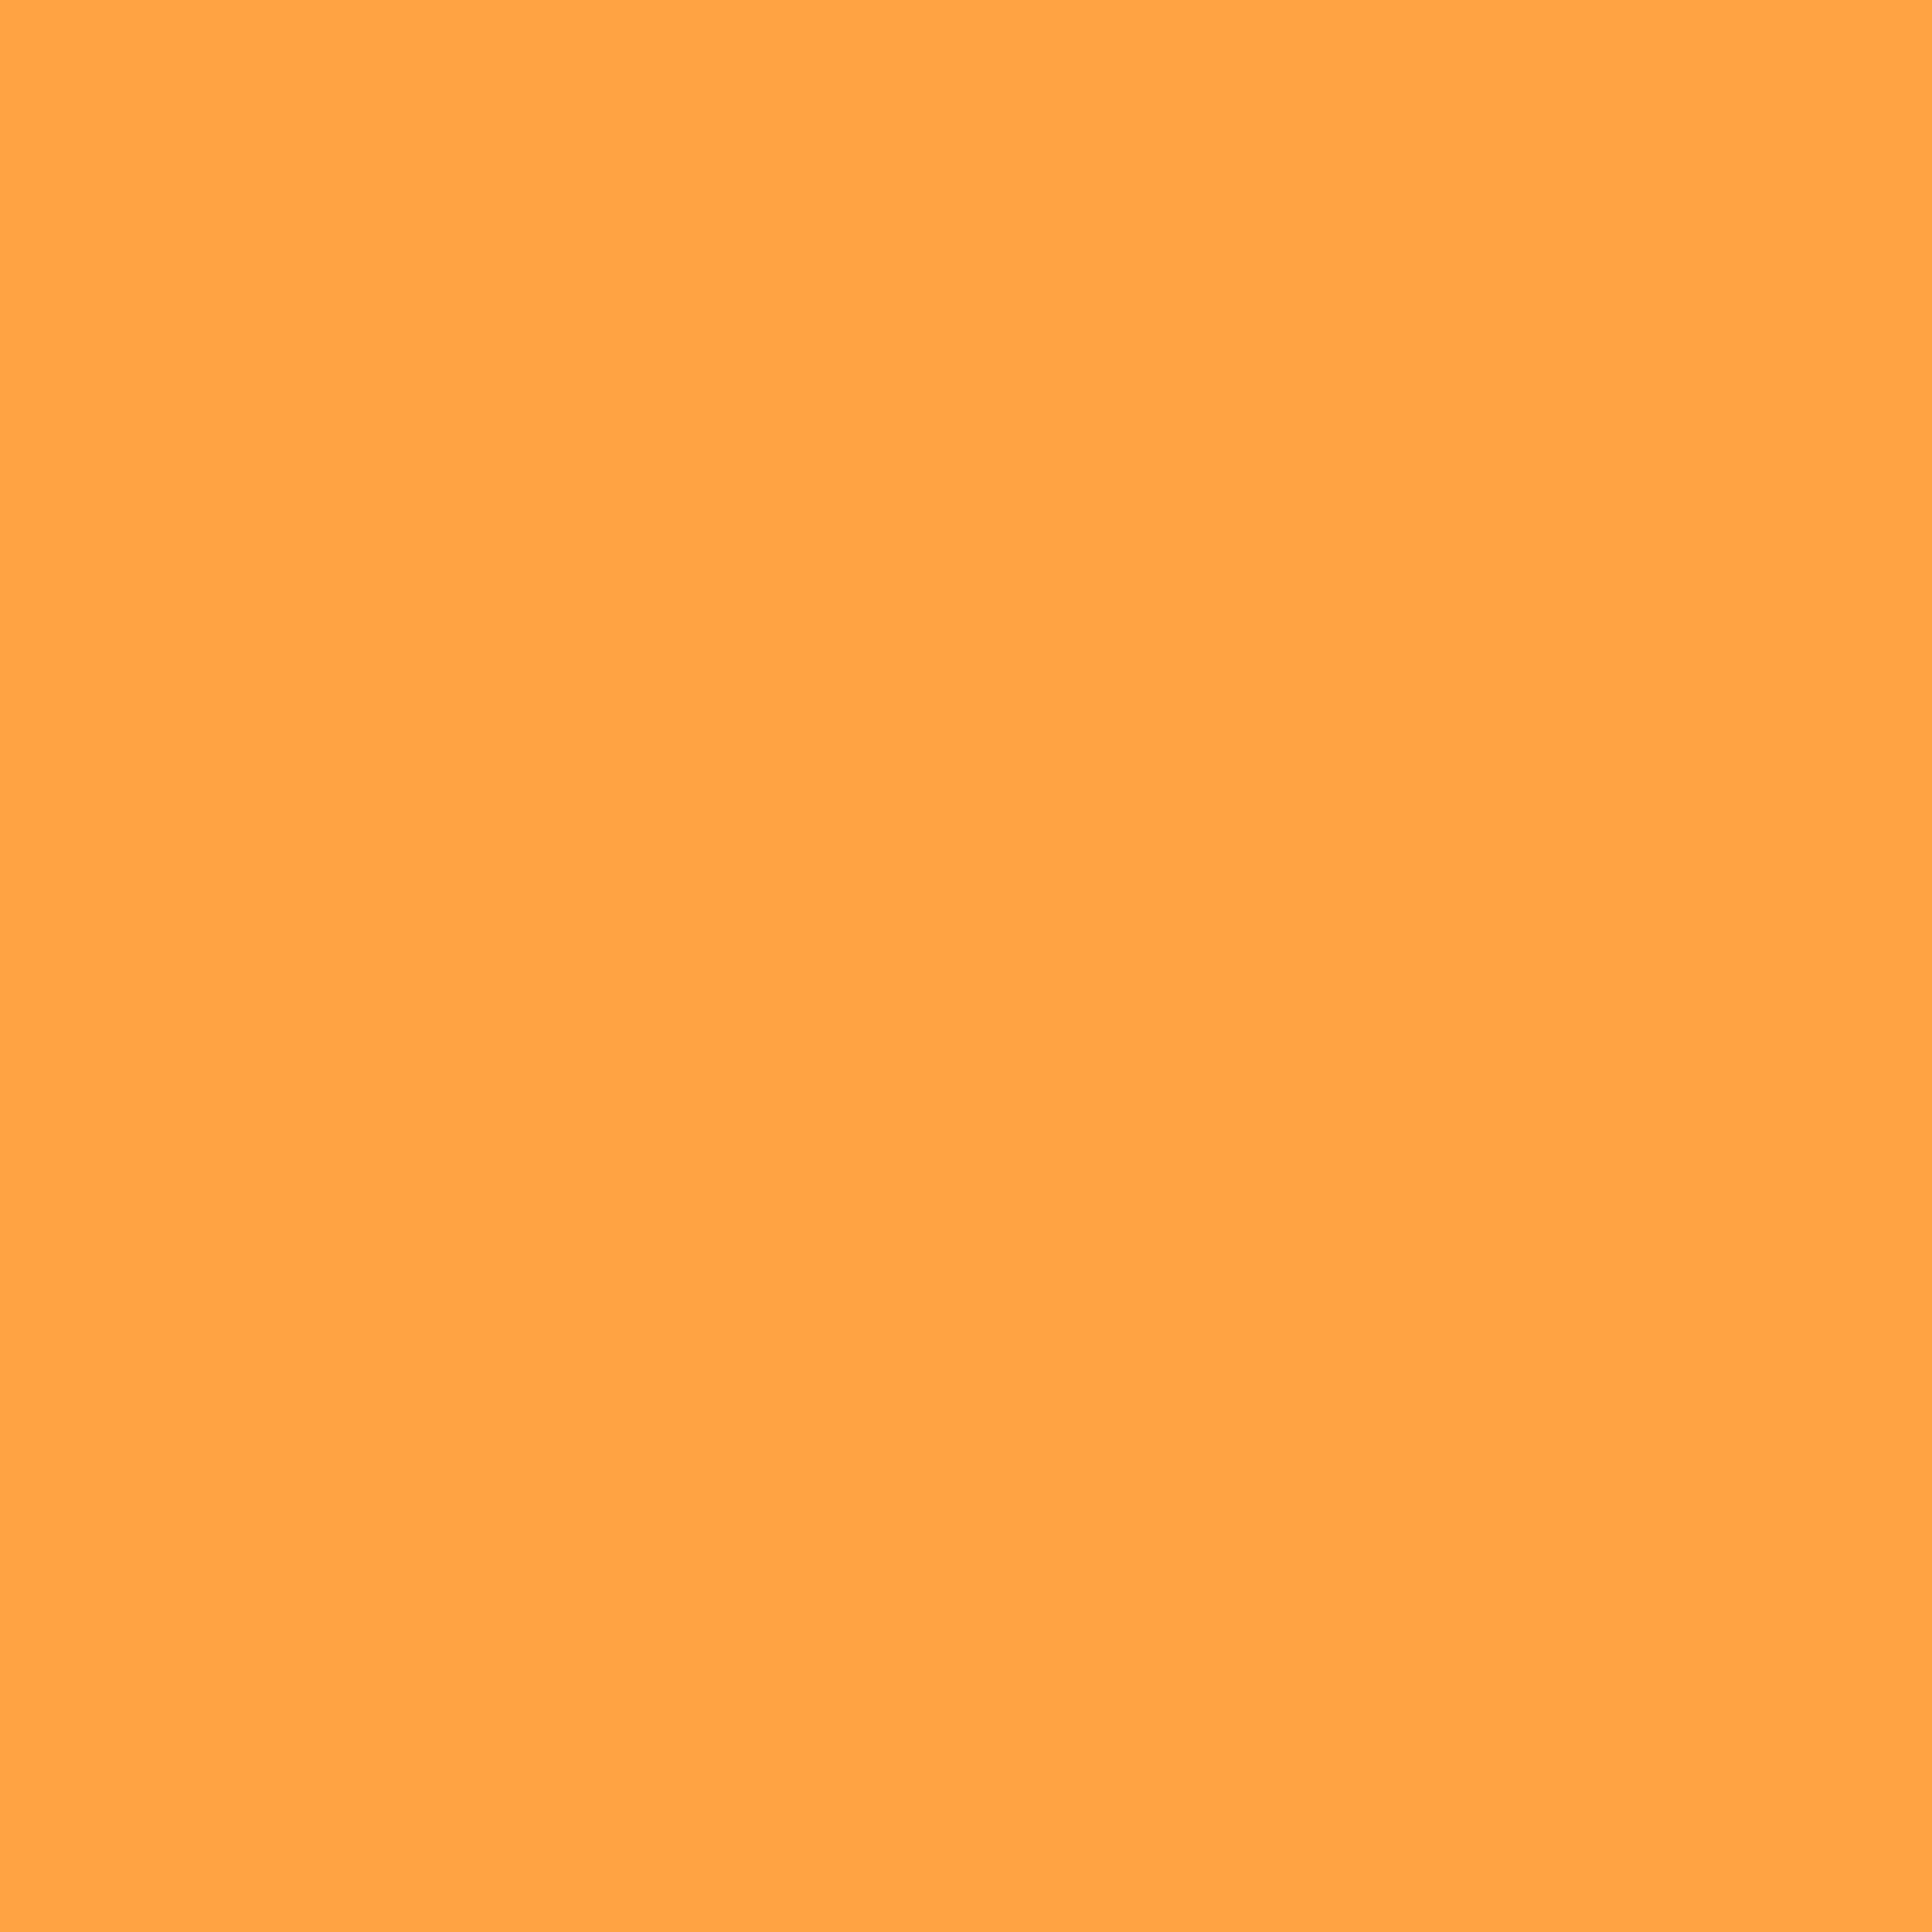 3600x3600 Neon Carrot Solid Color Background